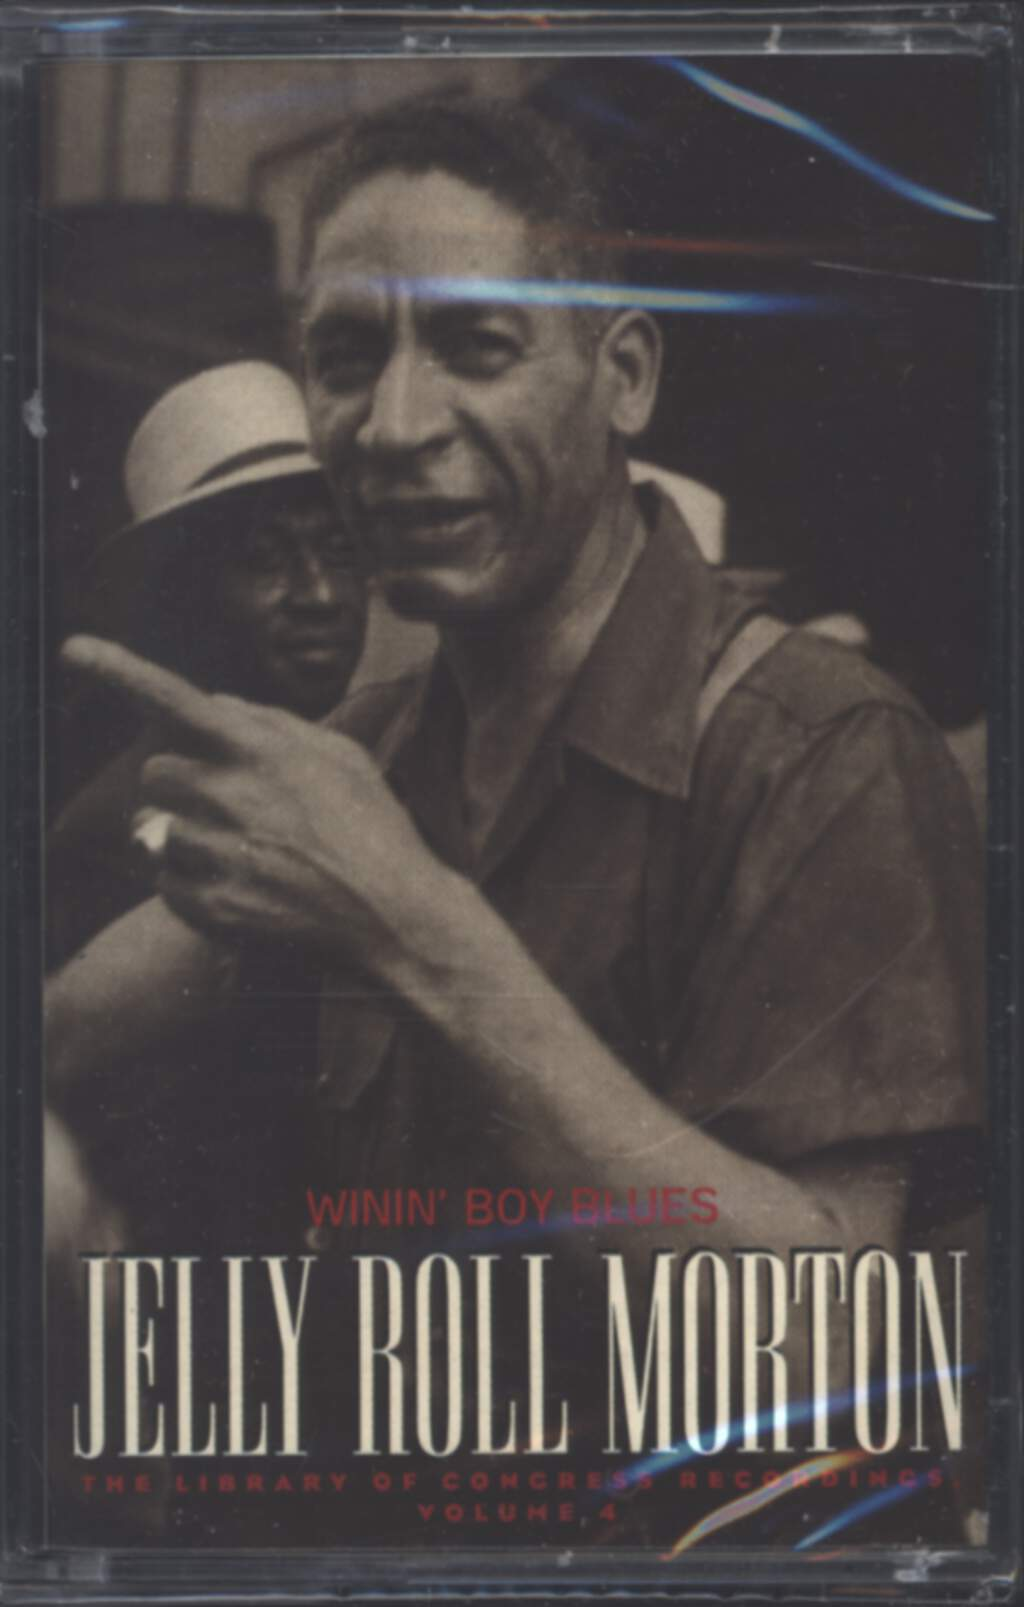 Jelly Roll Morton: Winin' Boy Blues: The Library Of Congress Recordings, Volume 4, Compact Cassette